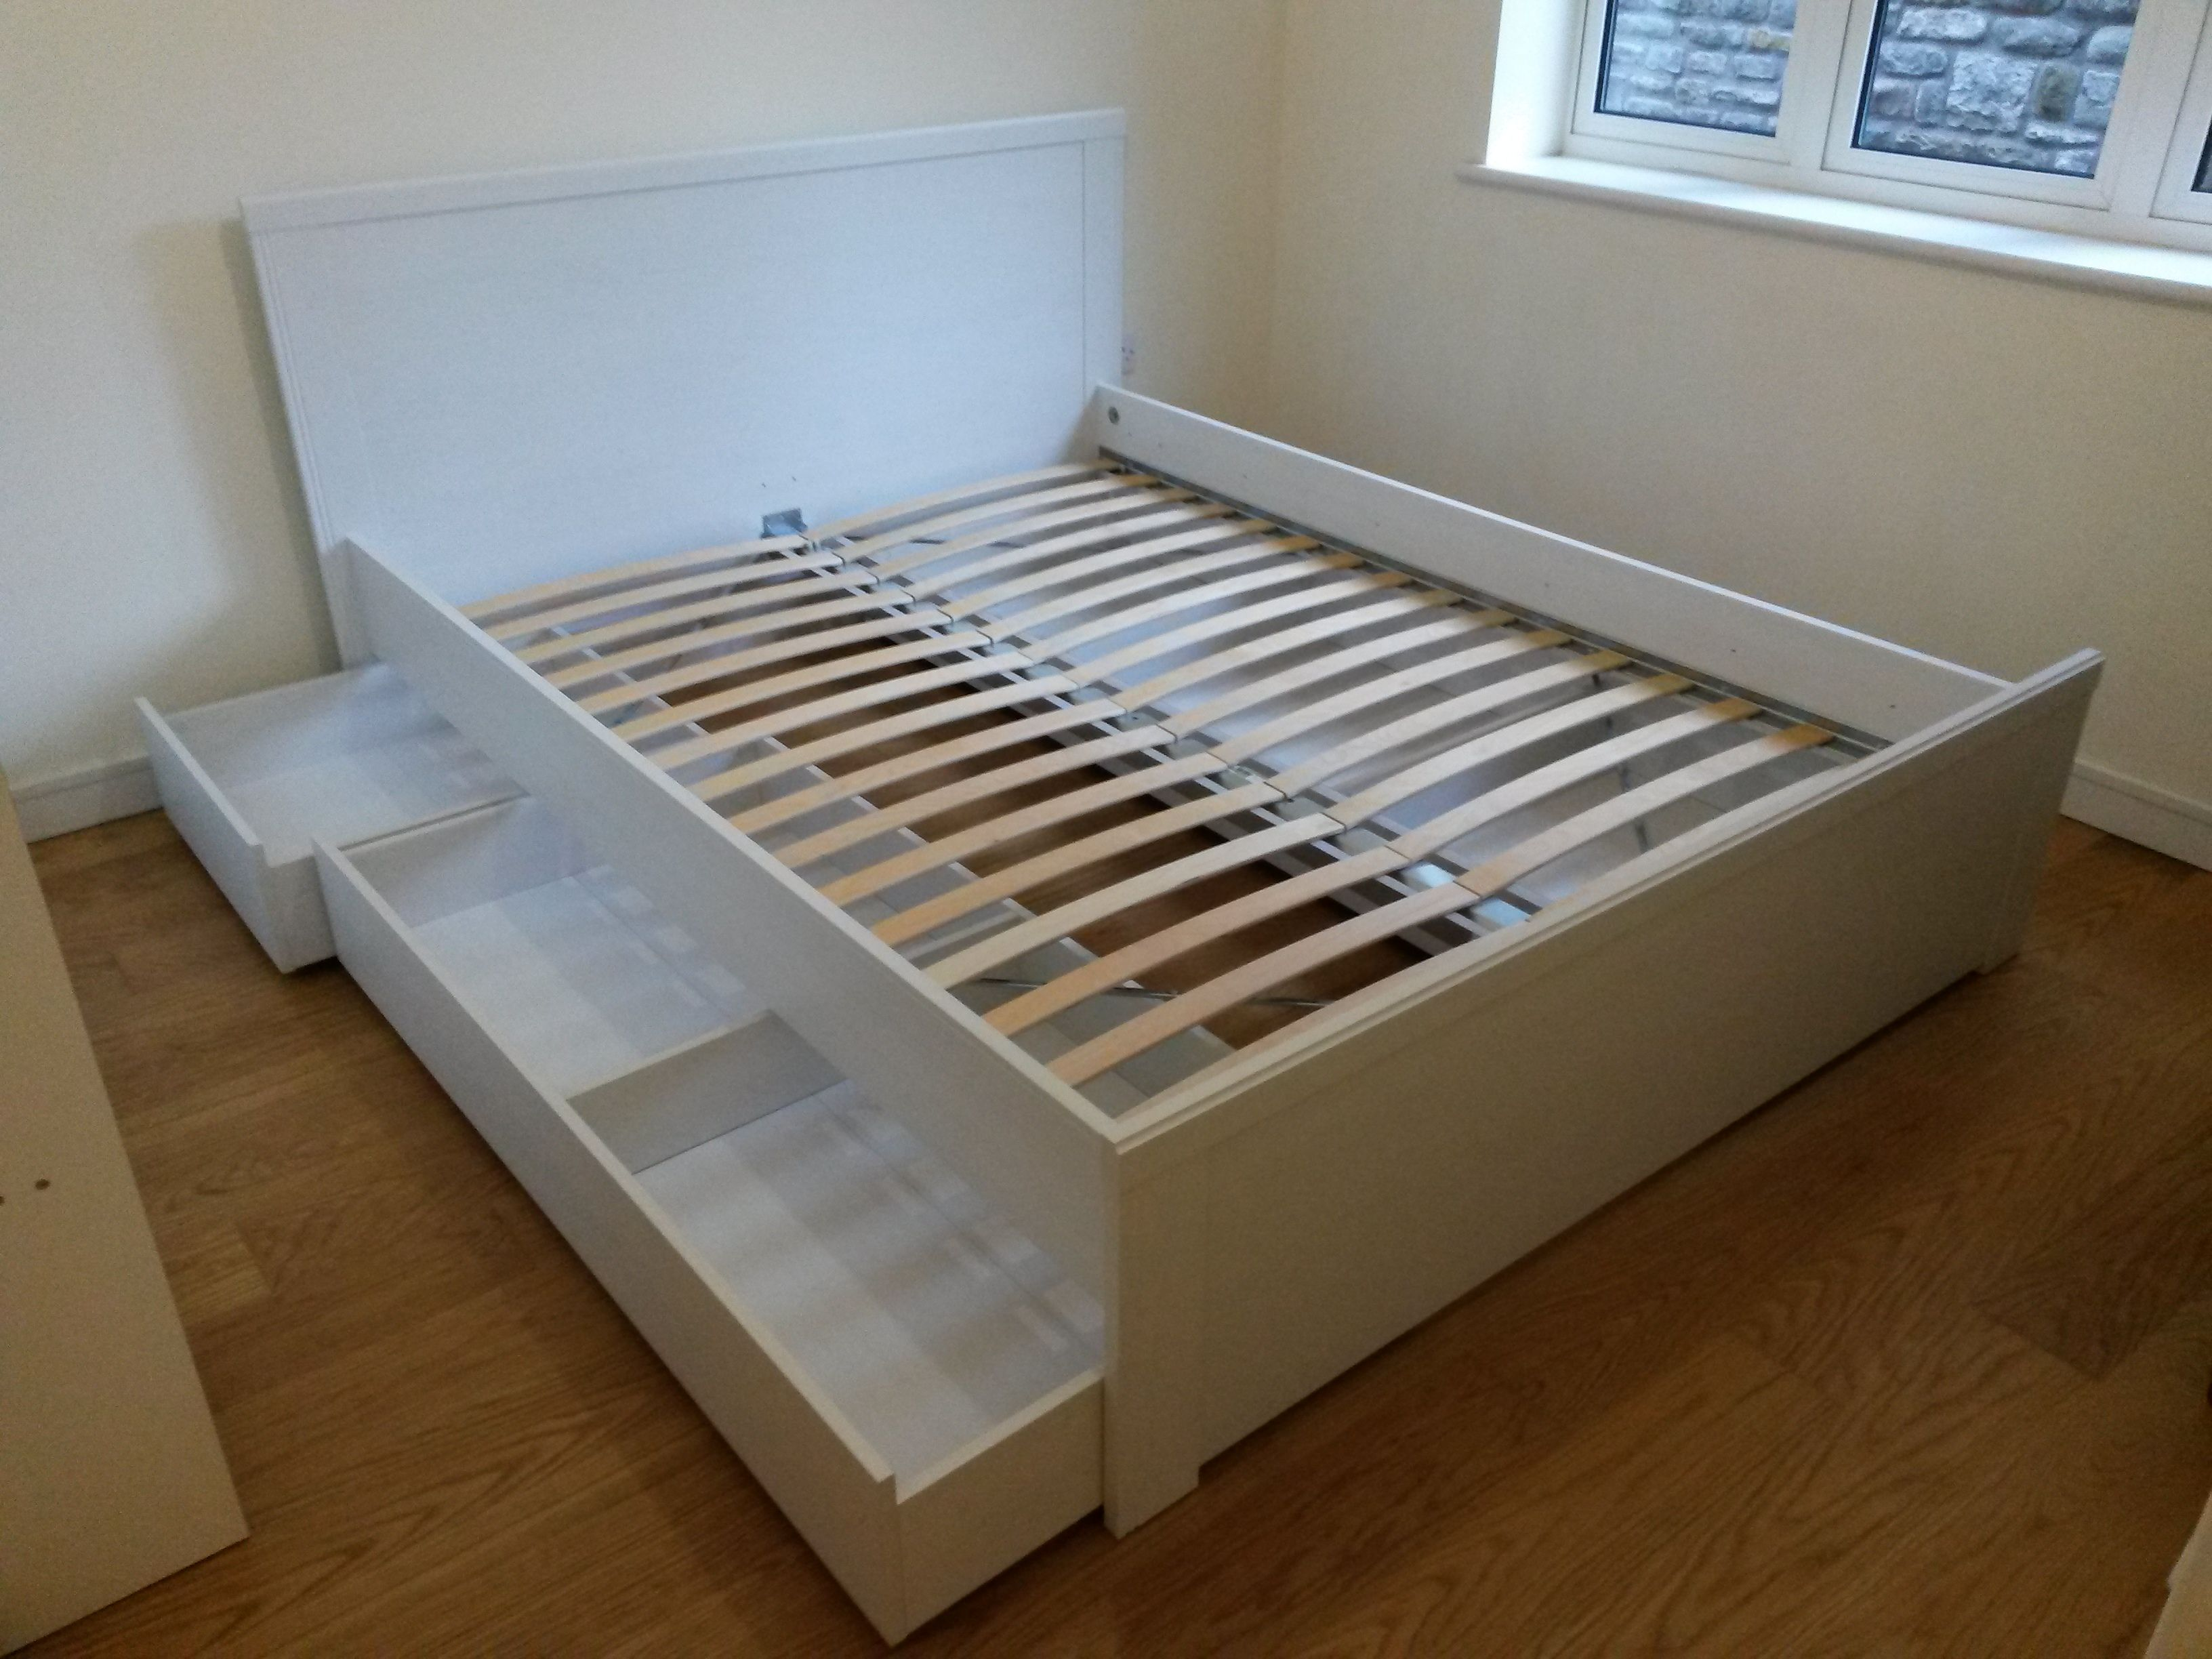 Ikea Brusali Double Bed With Under Storage Drawers Fully Embled In Bristol